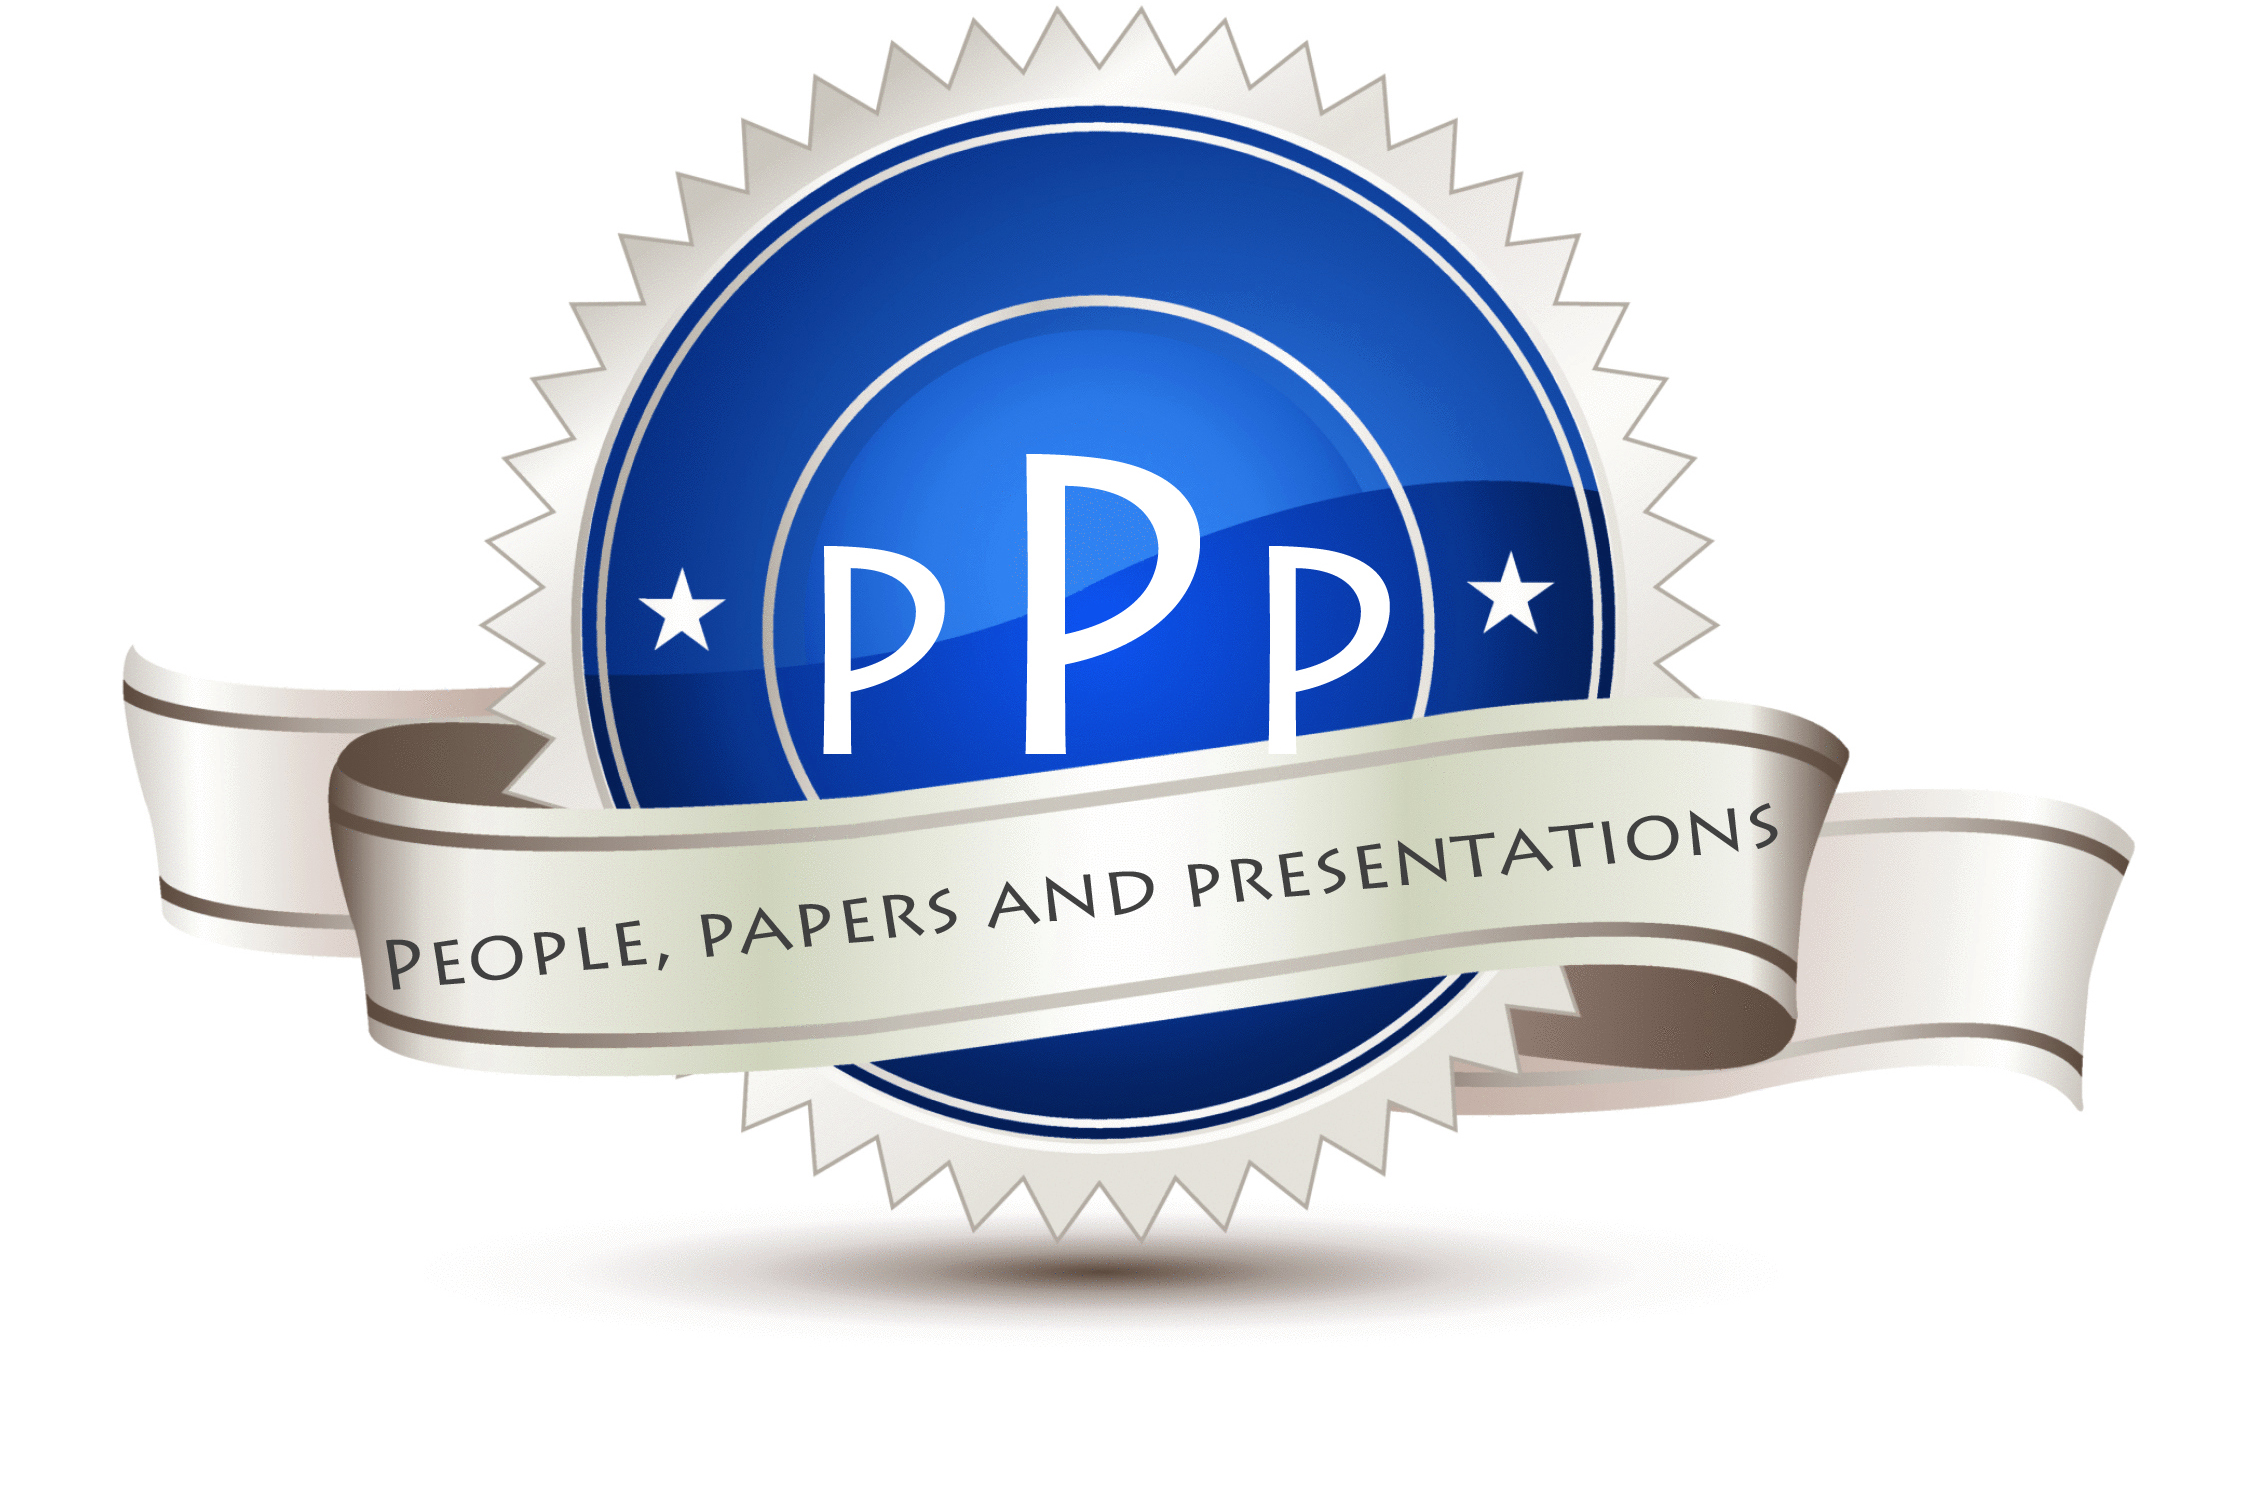 People, papers and presentations